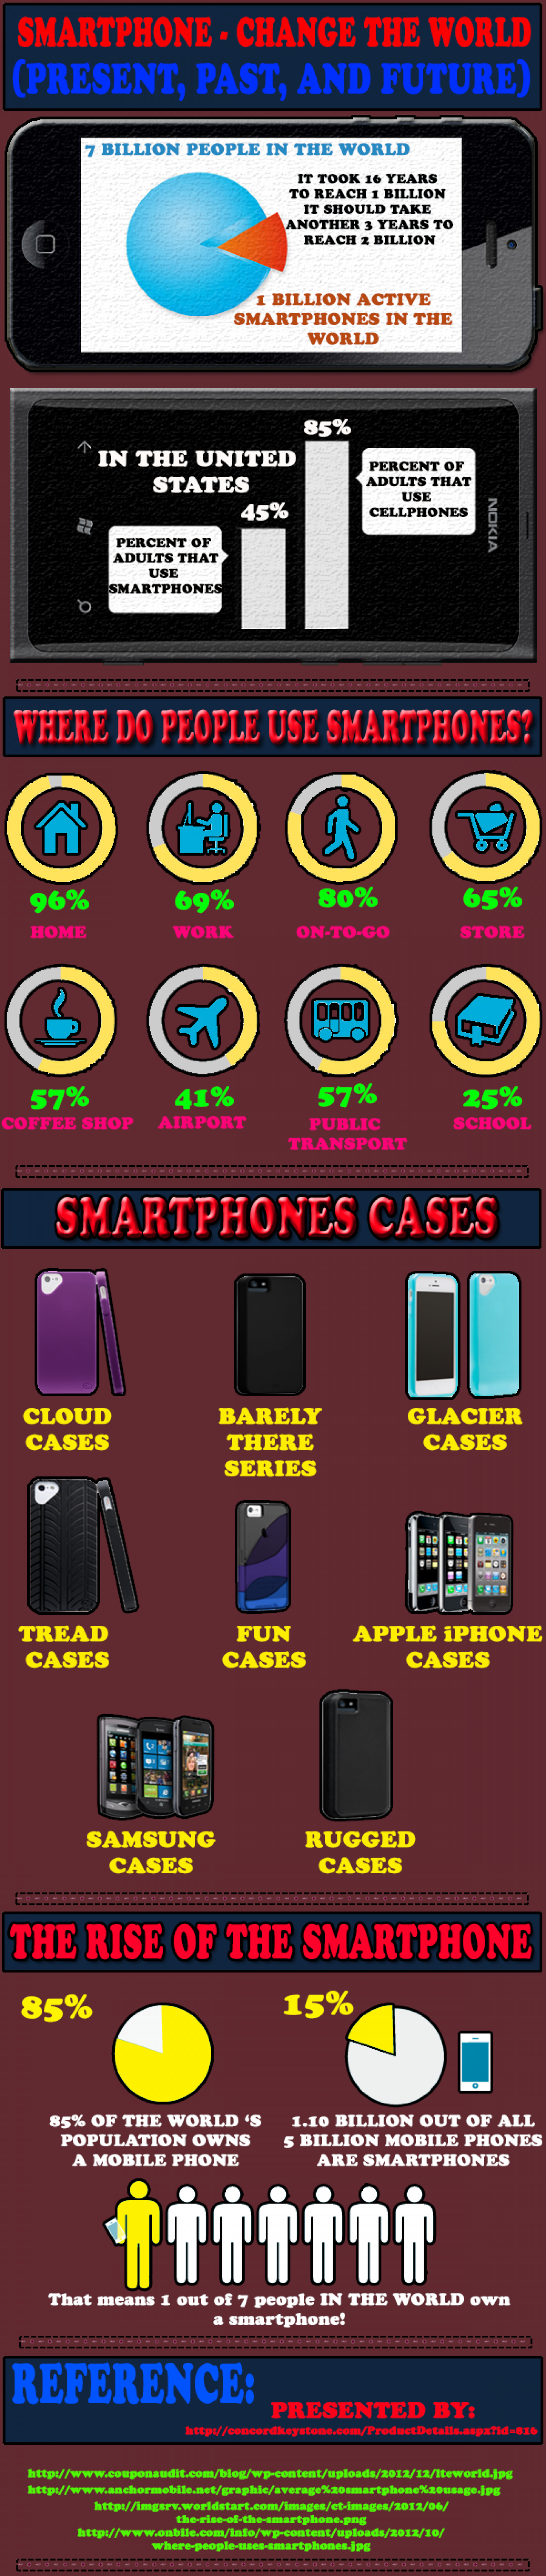 Premium covers to protect your mobile phones! Infographic